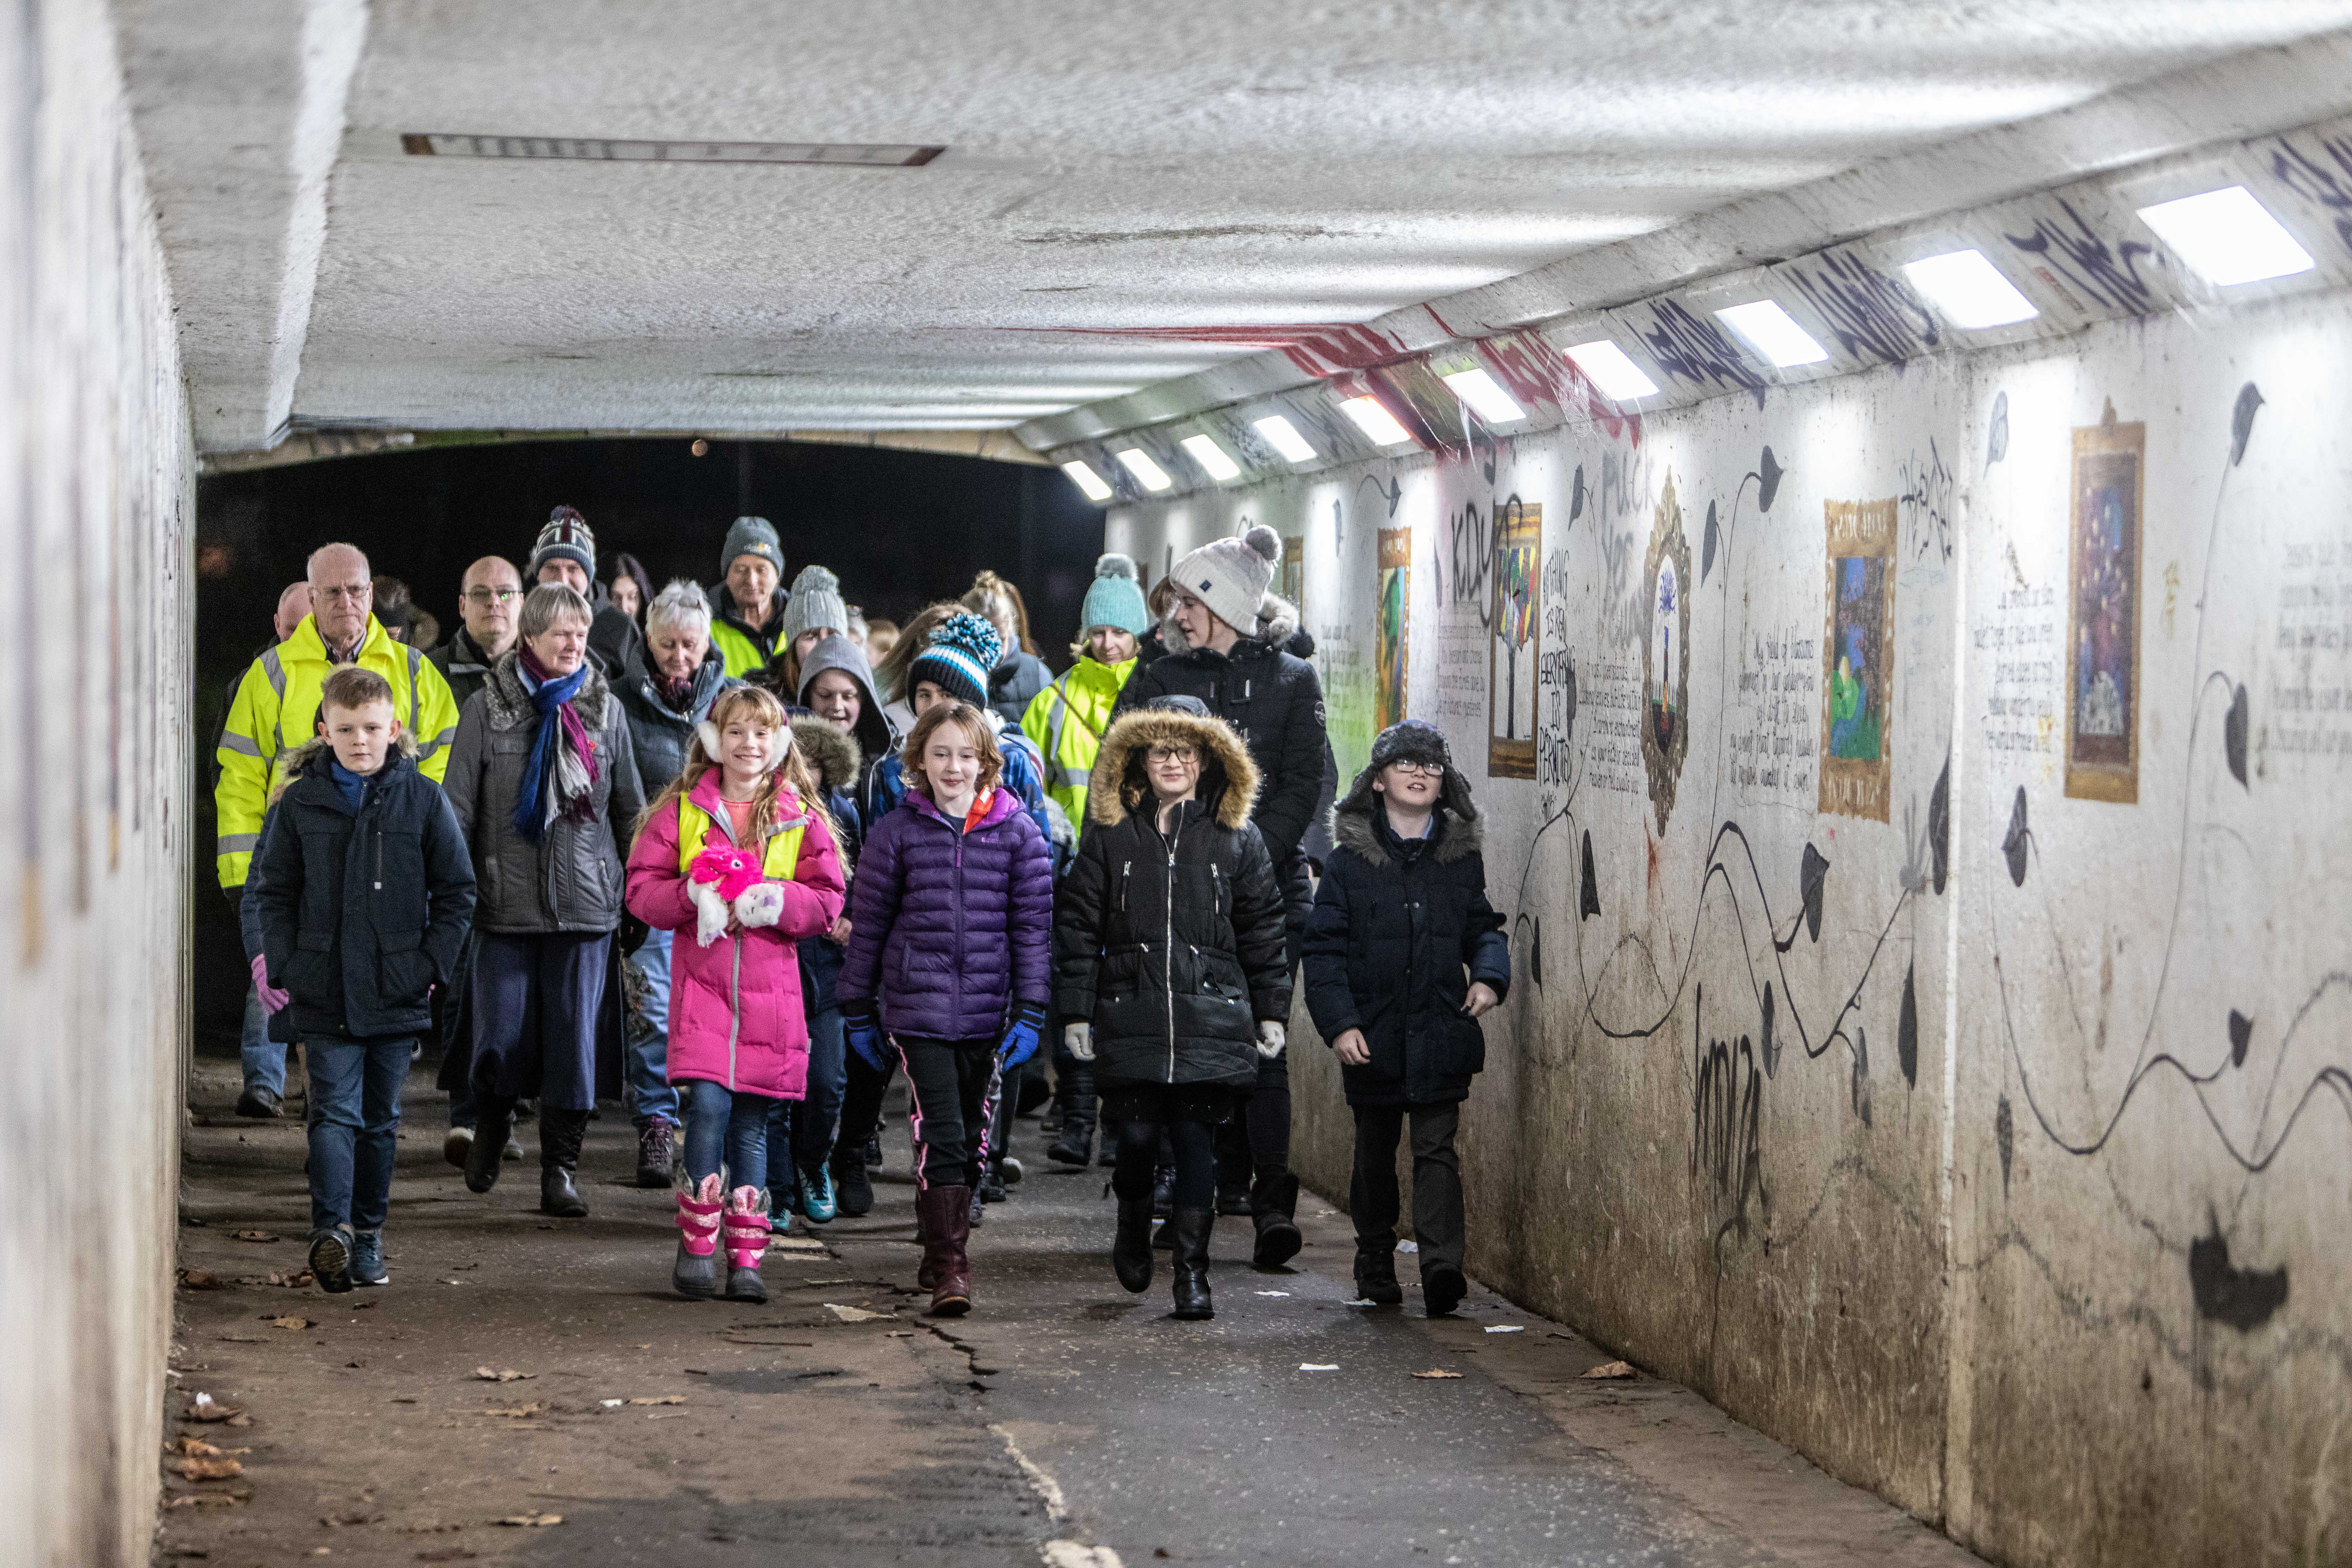 The underpass below the A92 trunk road that school kids will pass through on their way home after their bus service stops